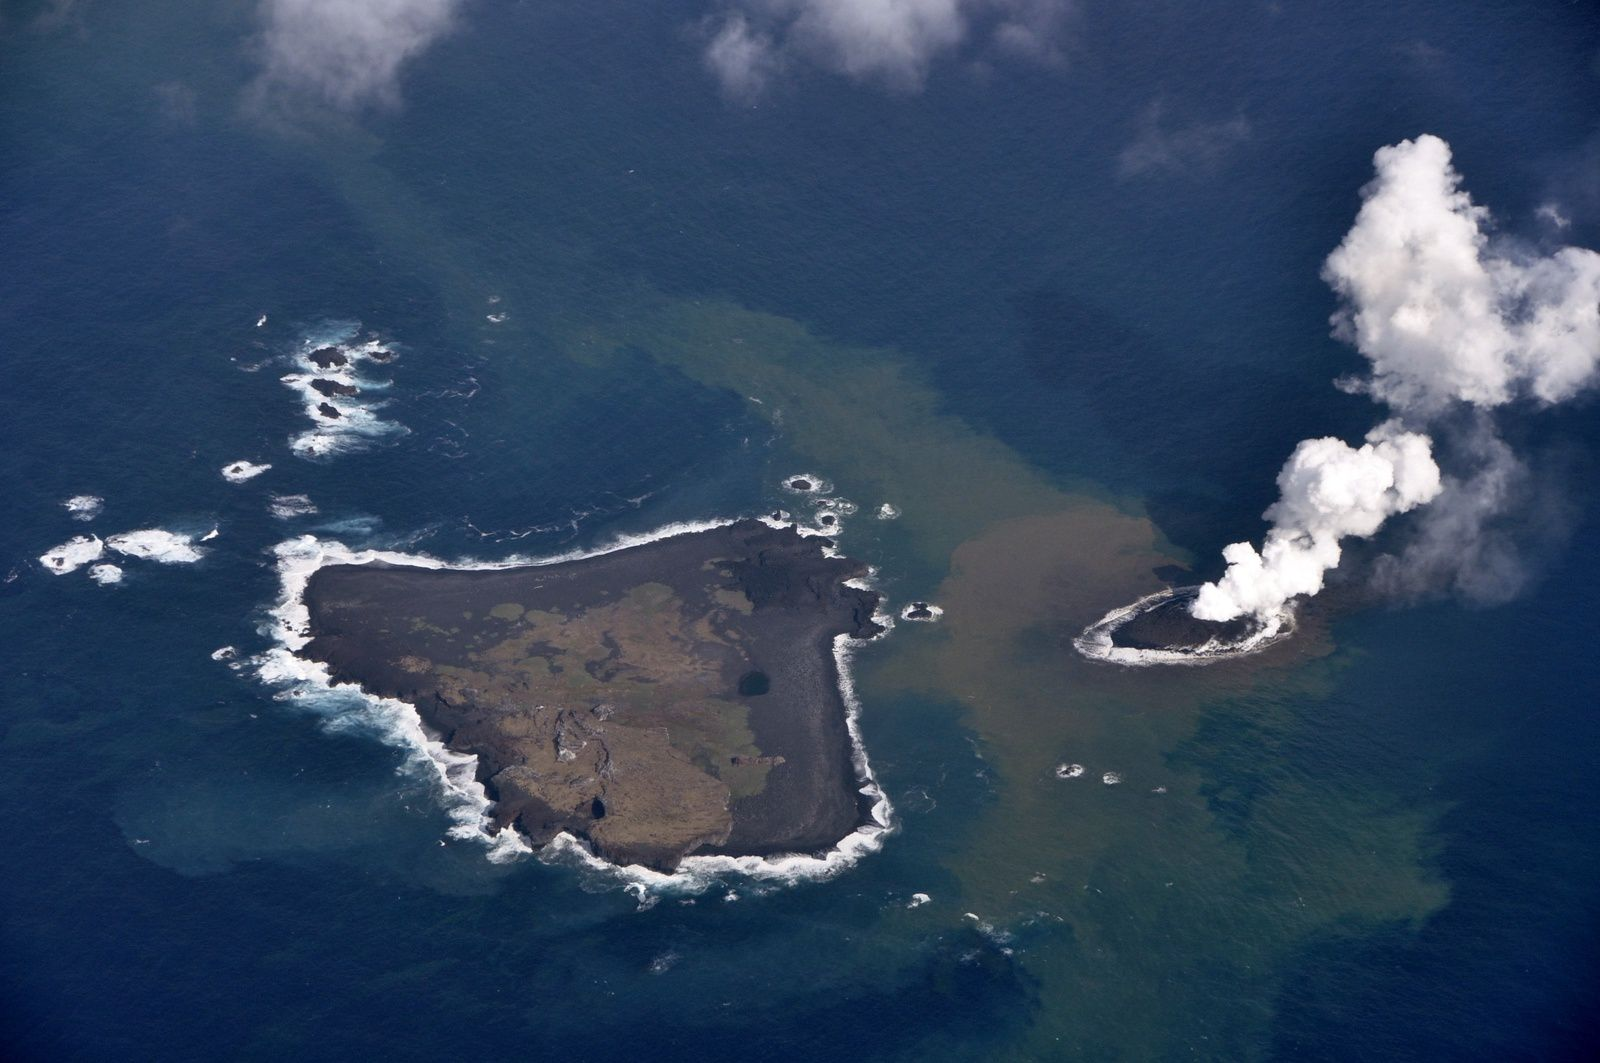 Nishino-shima and the site of the eruption November 20, 2013 - photo Japan Coast Guards